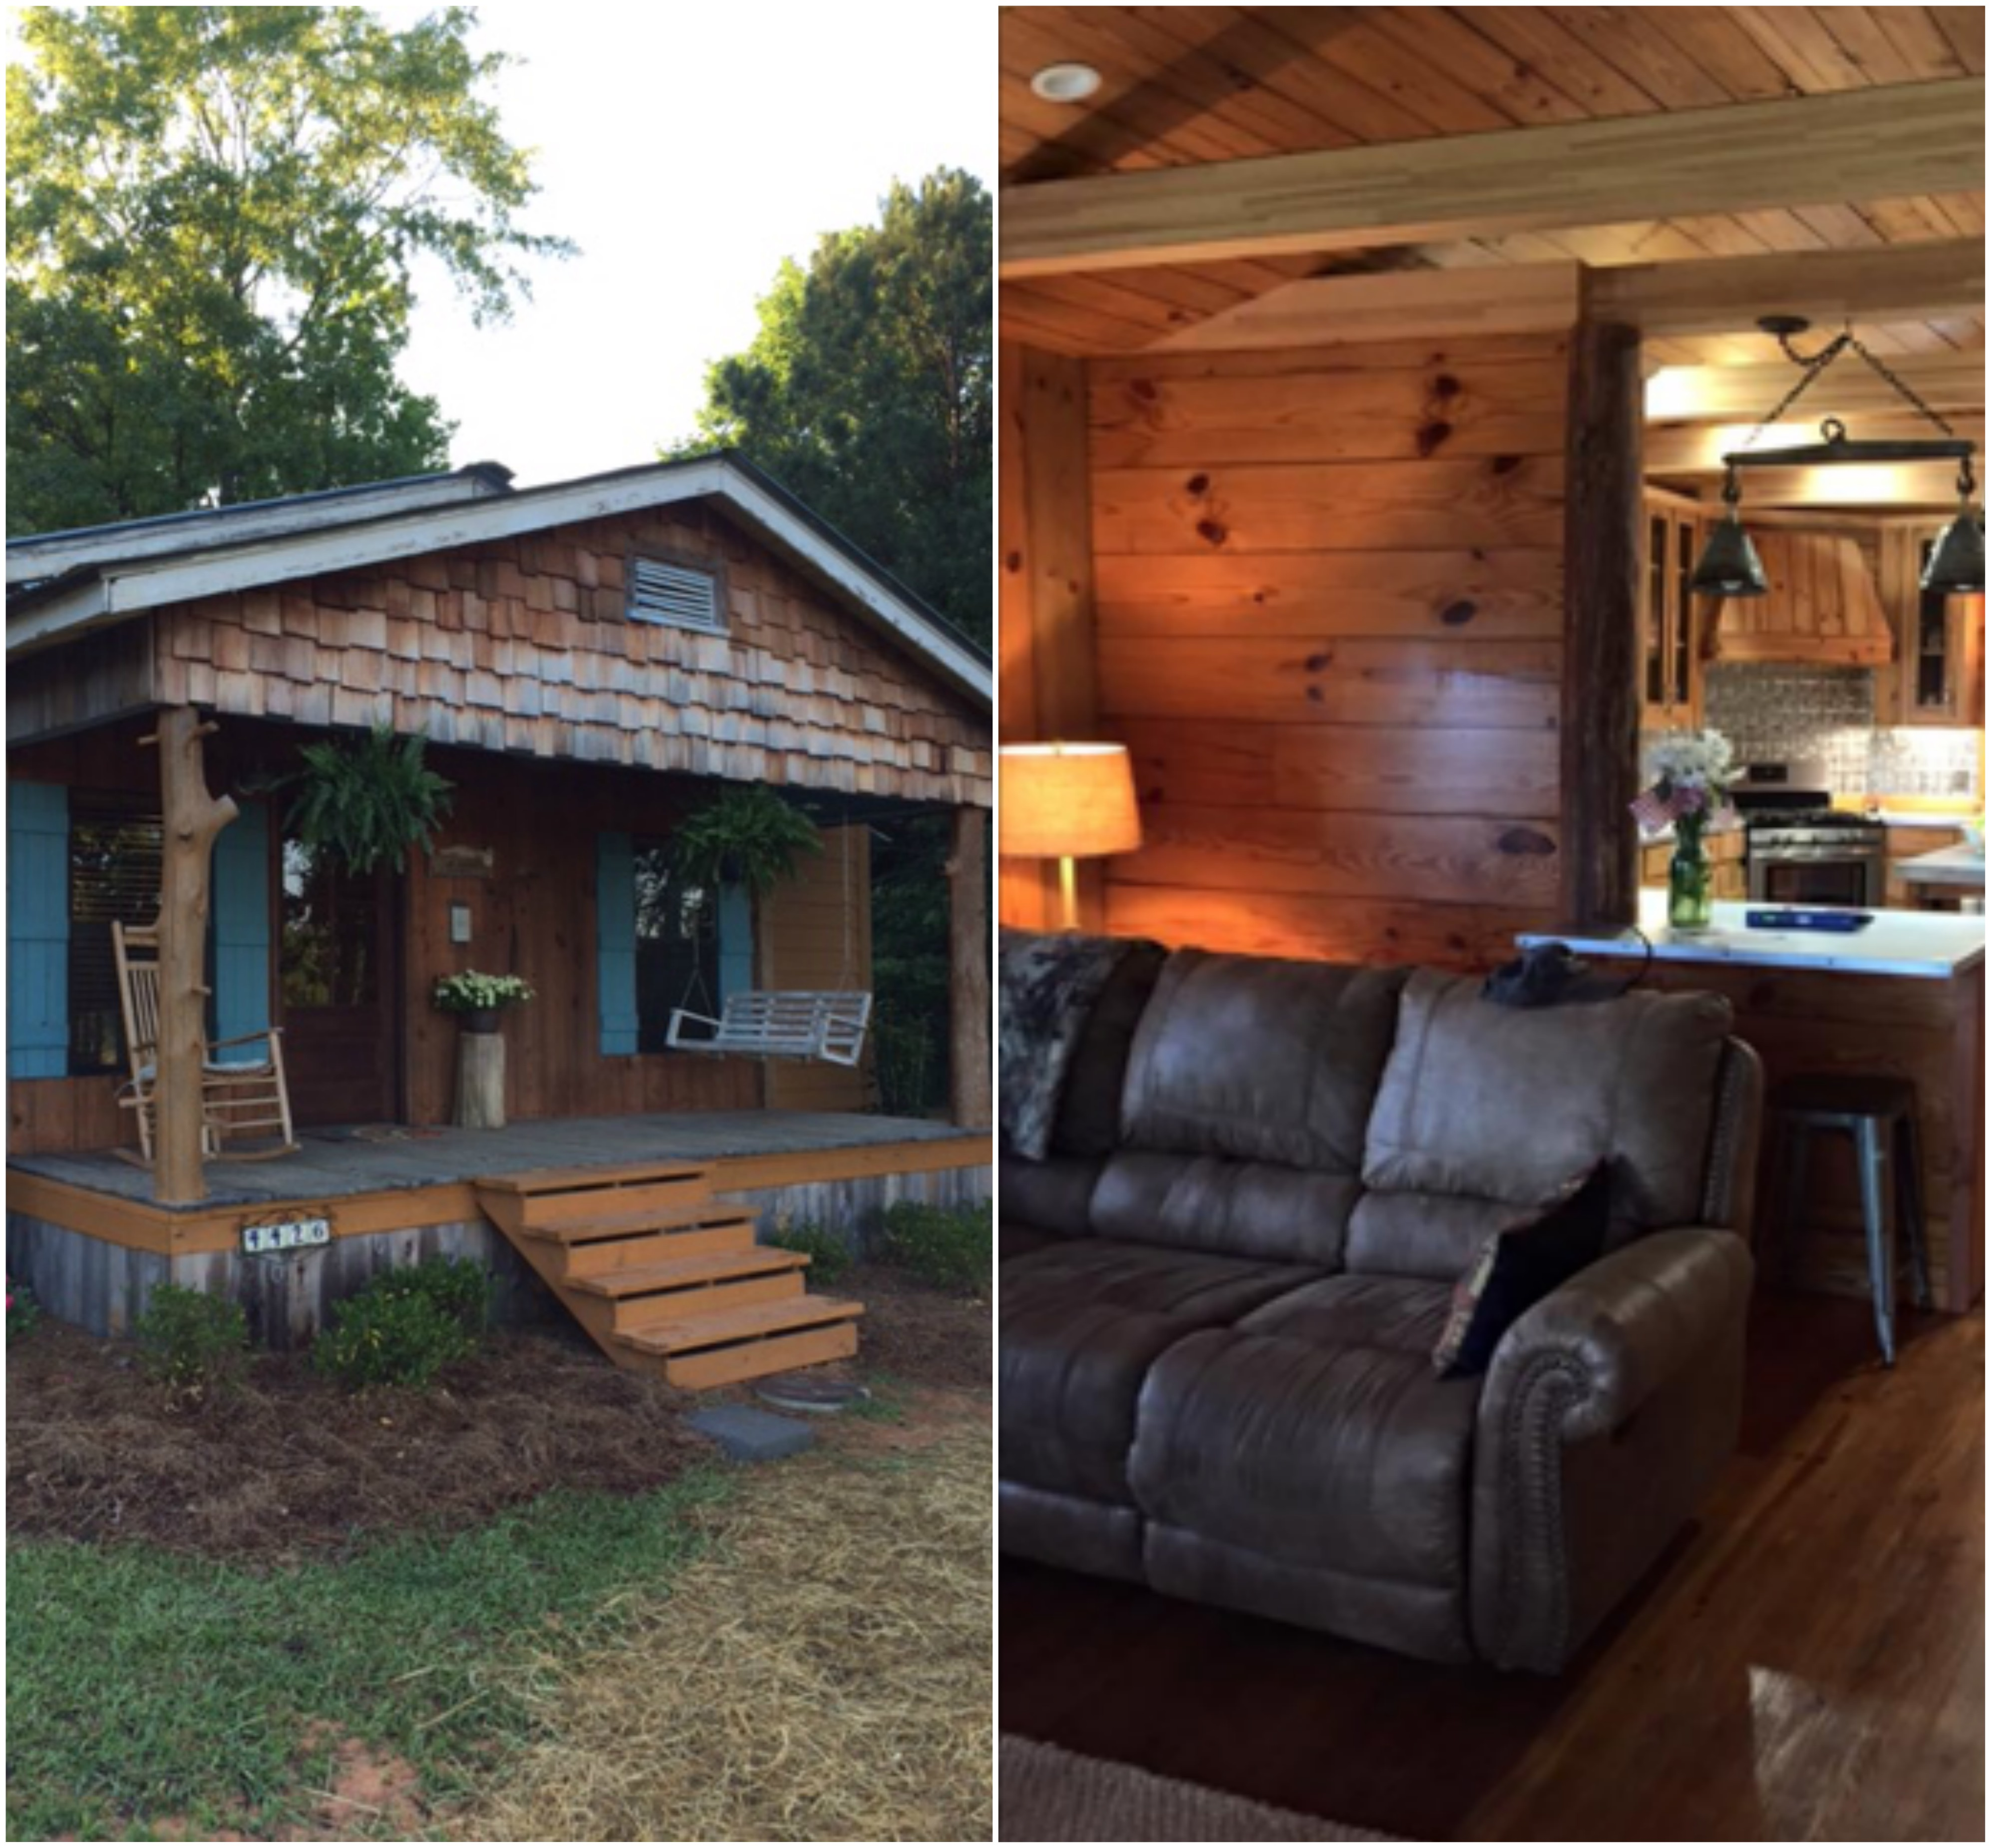 x of beautiful mountain vacation national amberwood cabin near cabins rocky denver park rentals att photo affordable